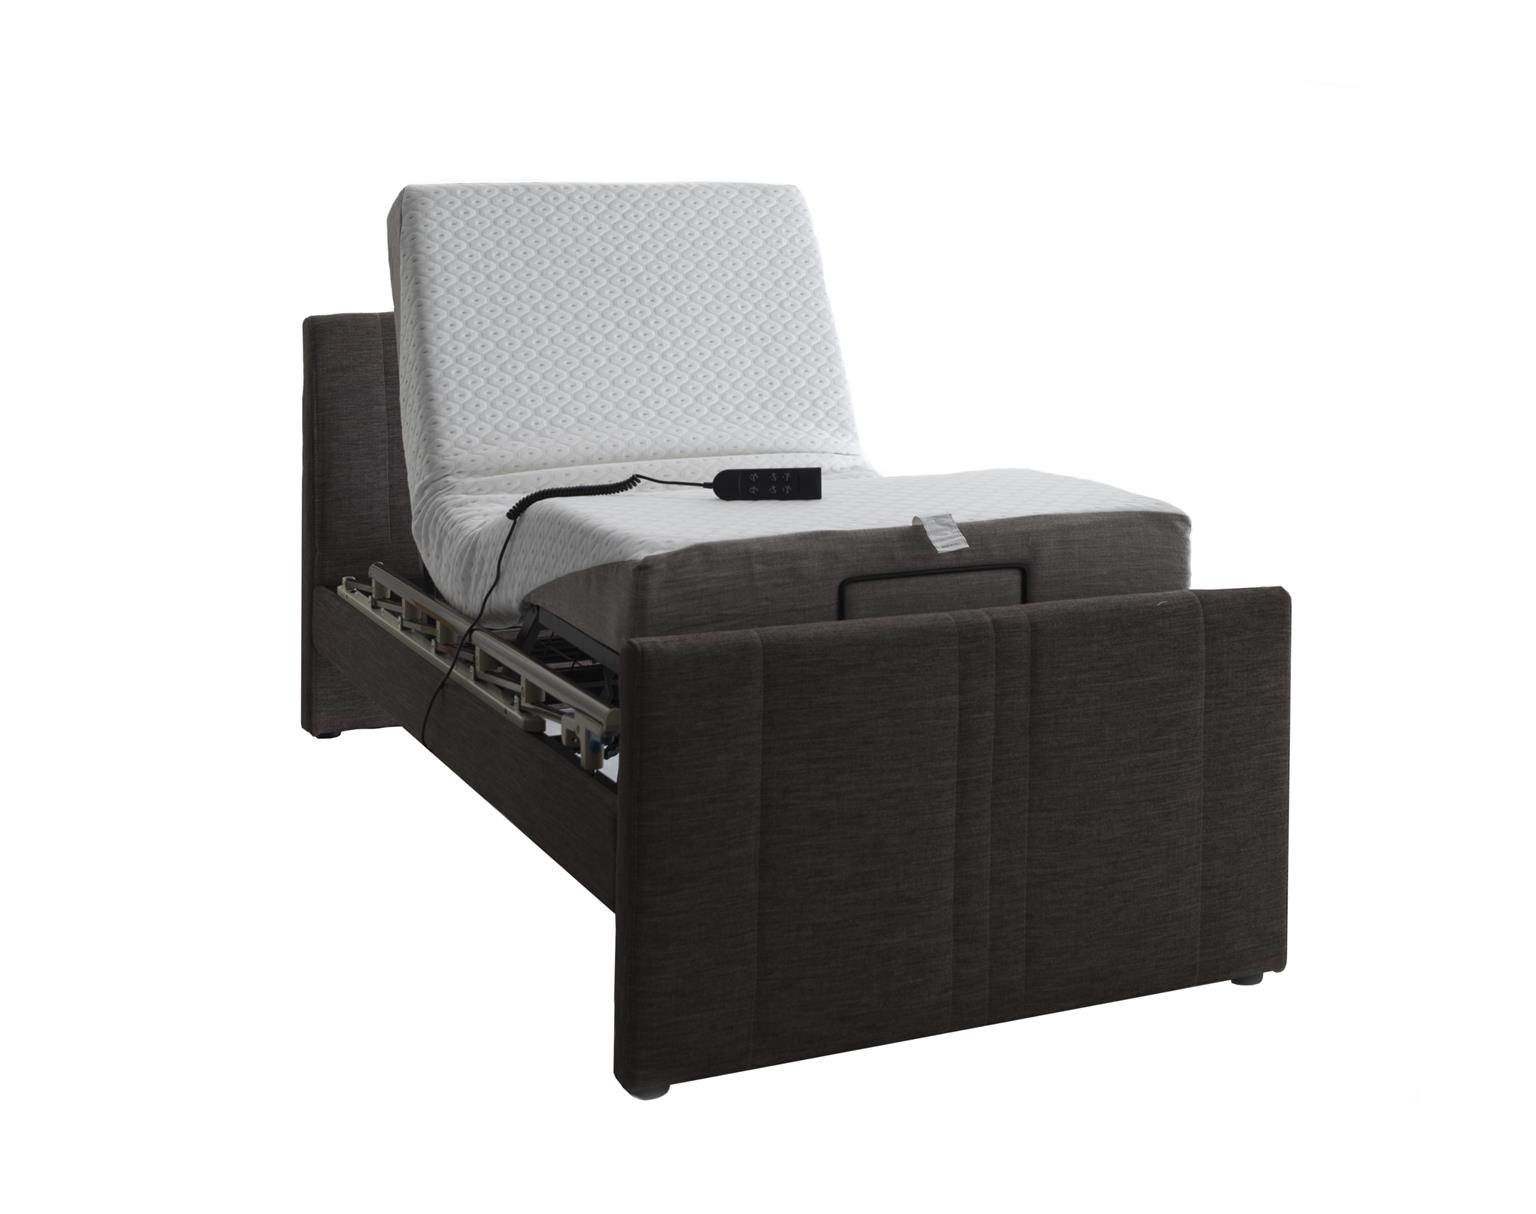 Electrically Adjustable Homecare Bed, Erica by Avante - FREE DELIVERY, LAUNCH SPECIAL